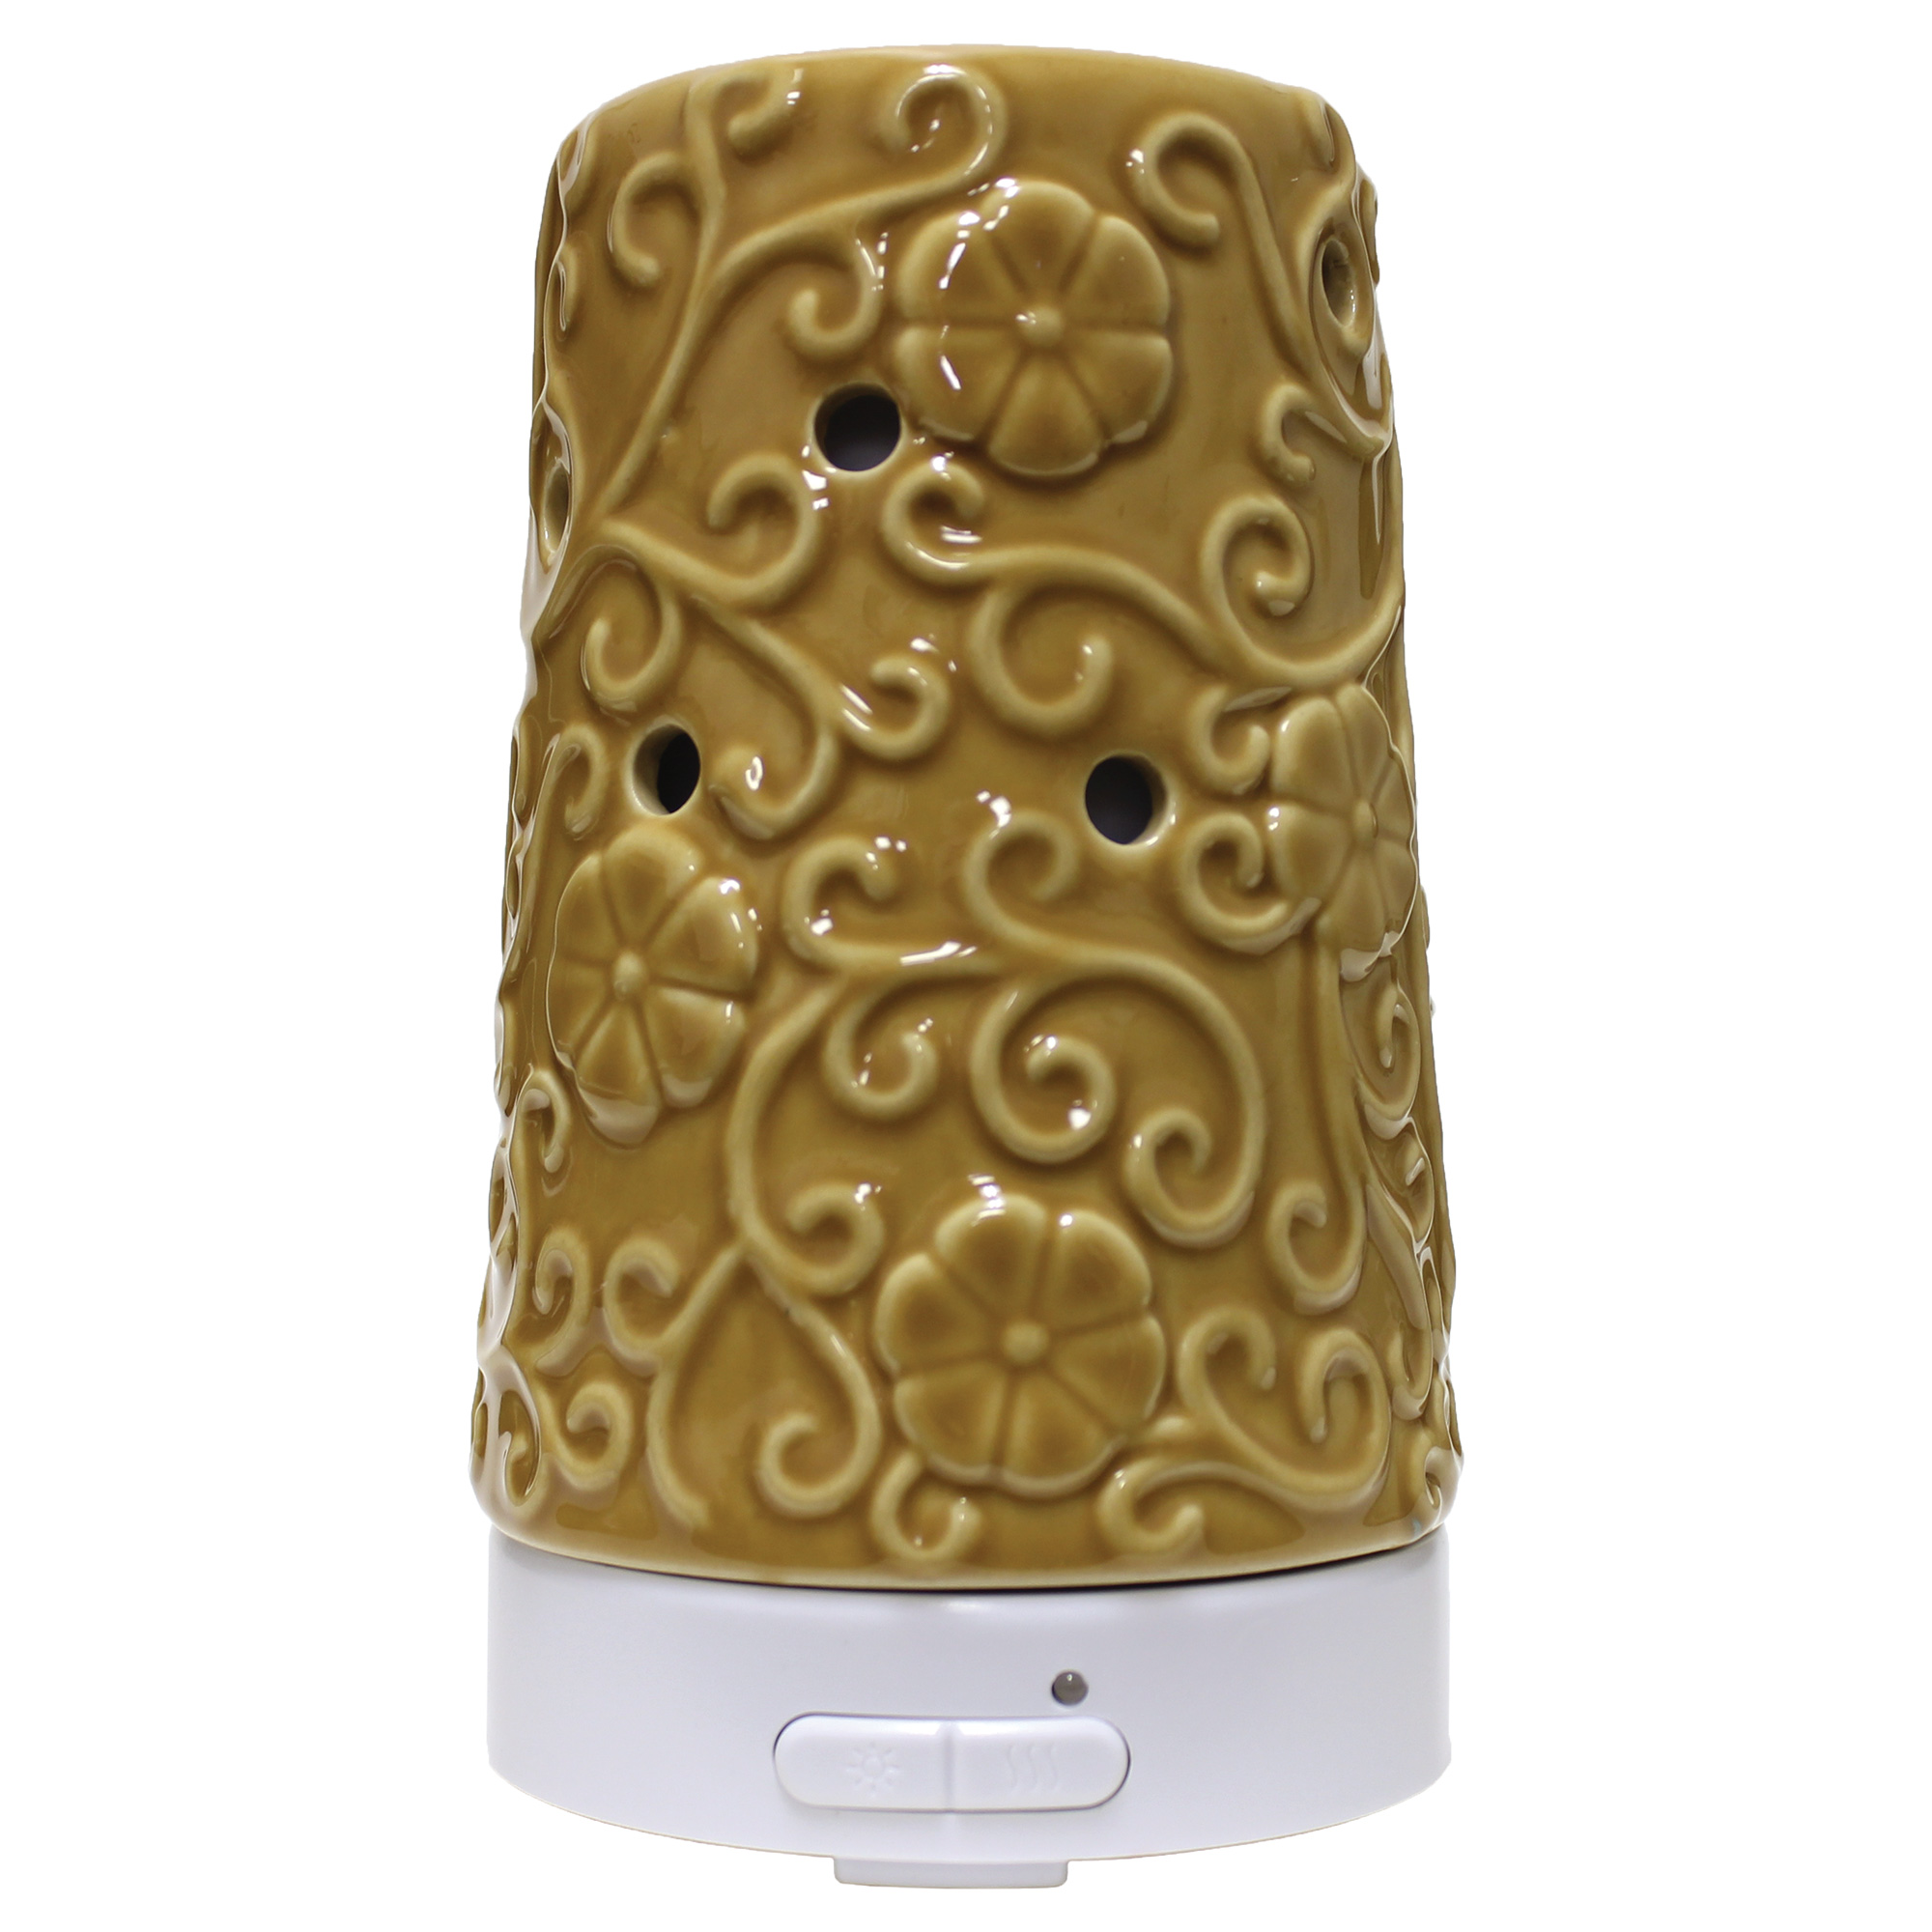 BOTANICAL ULTRASONIC OIL DIFFUSERUPC# 674623018317